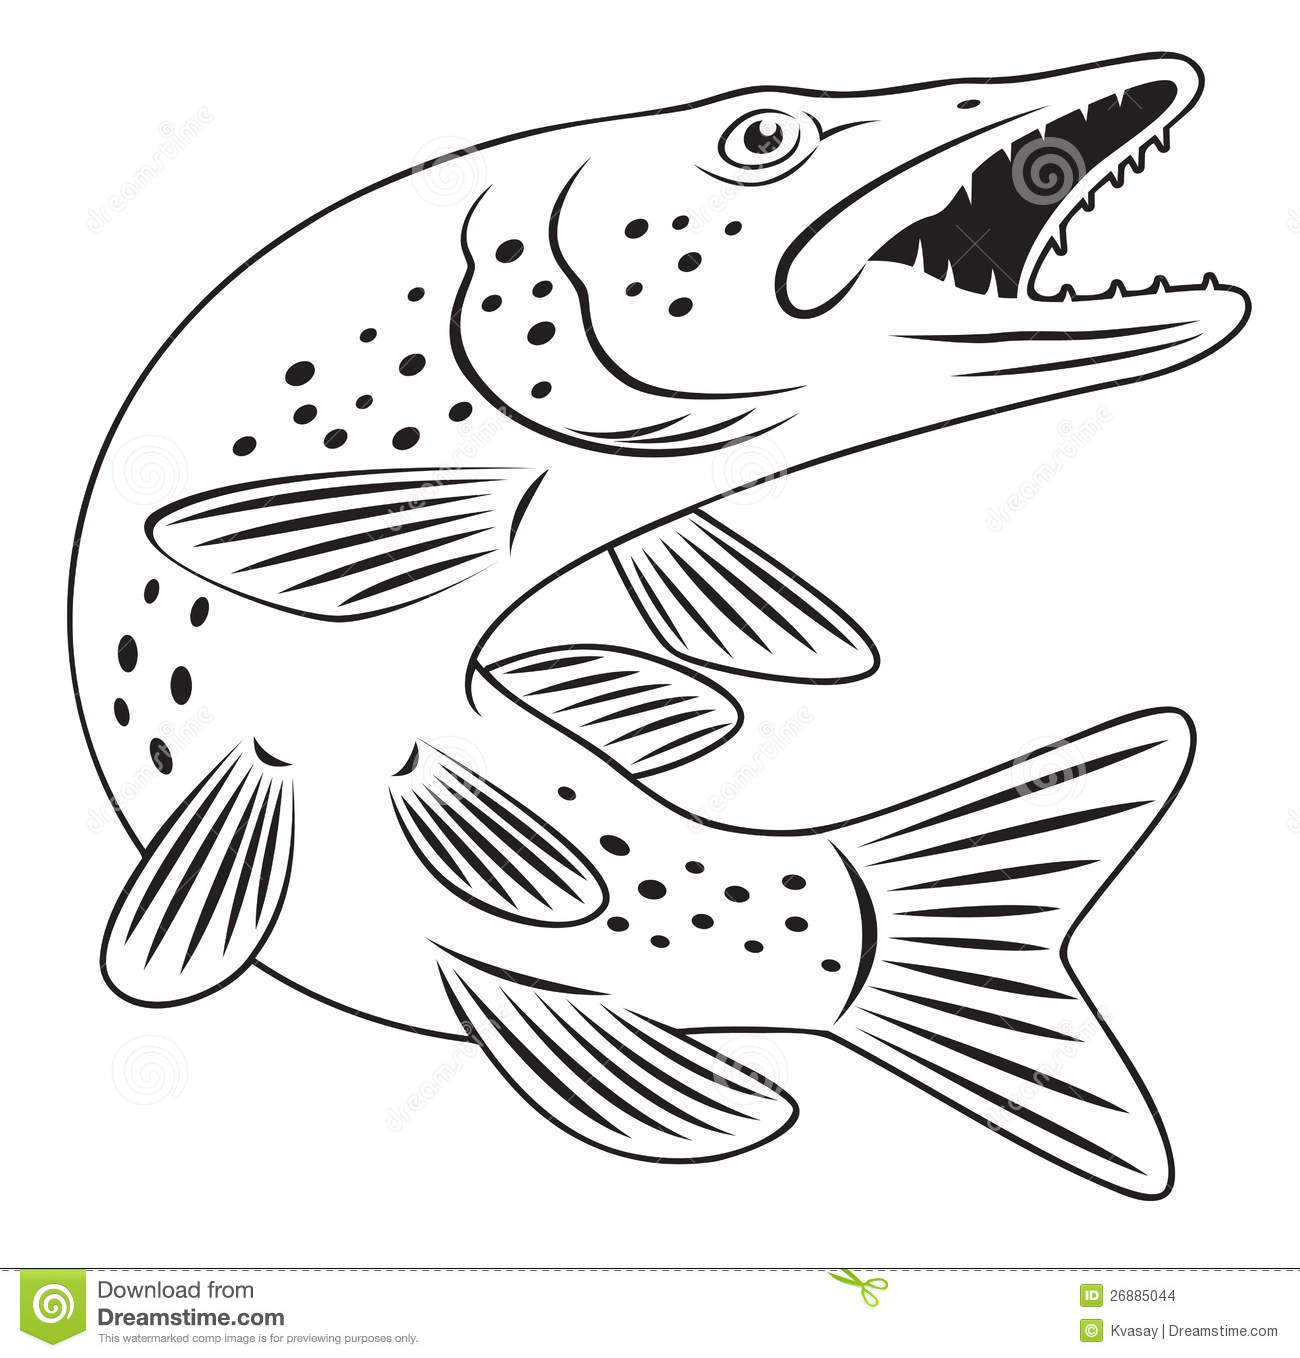 Northern Pike coloring #20, Download drawings